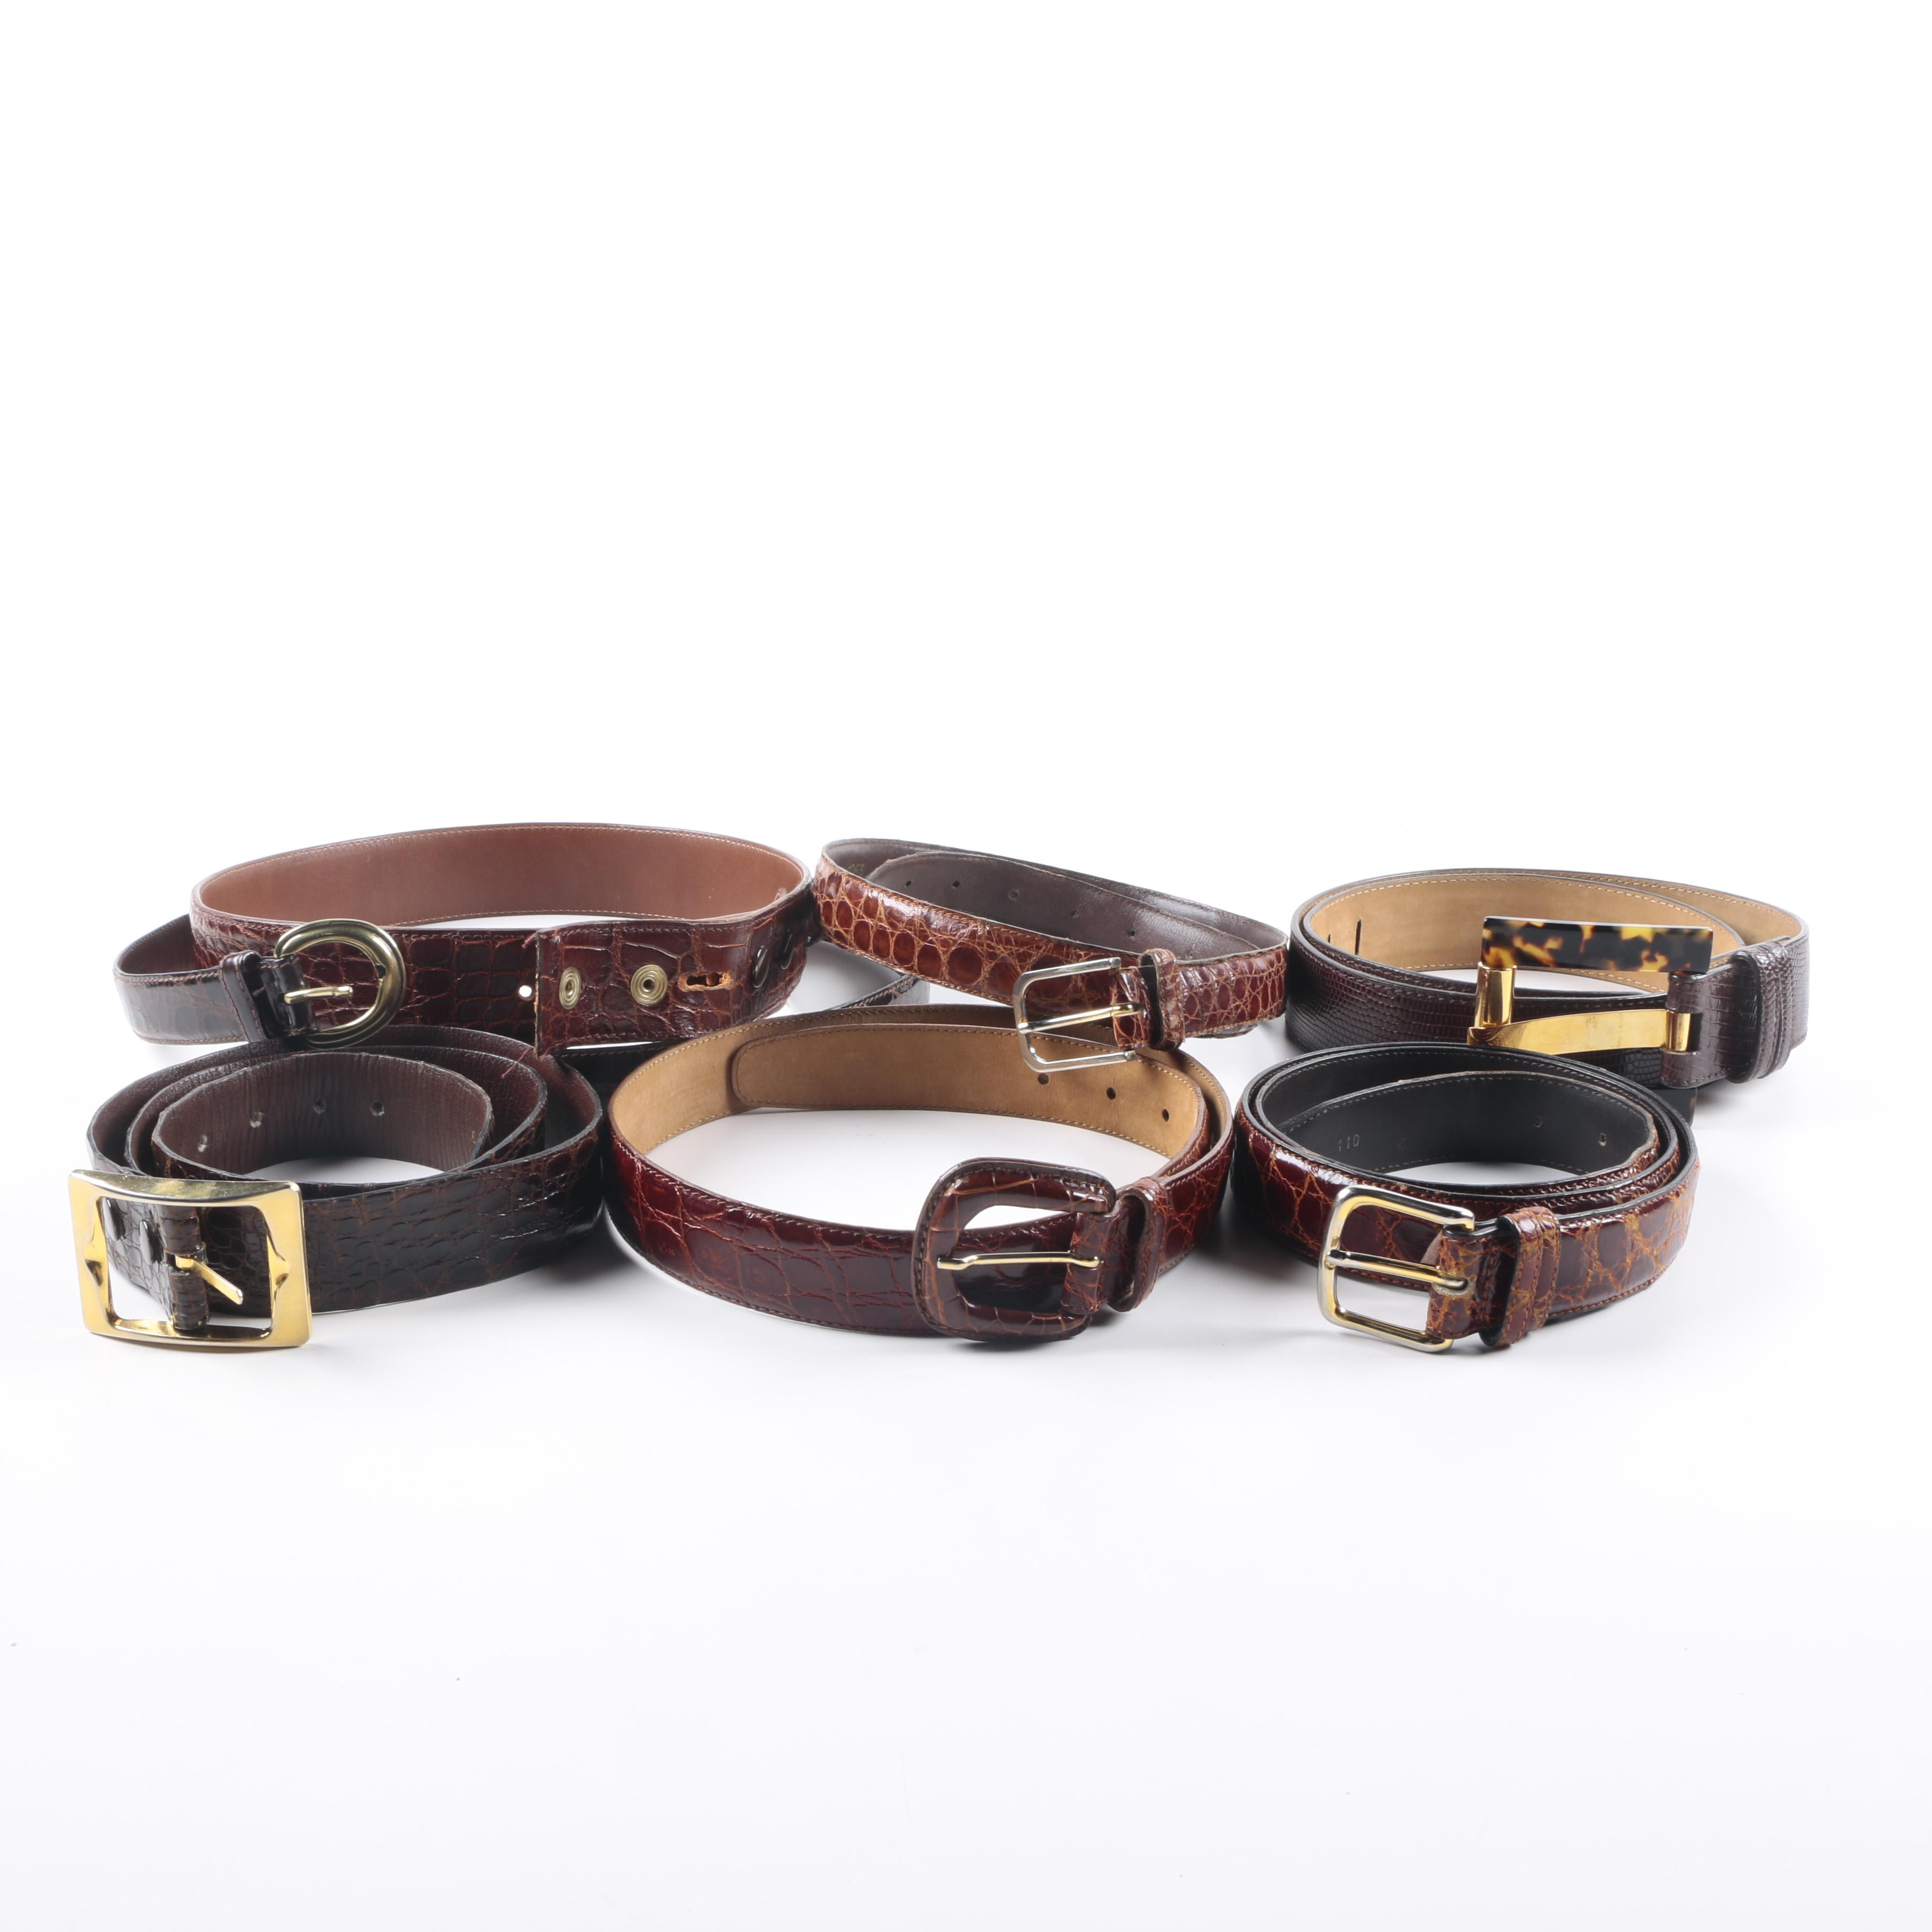 Collection of Alligator and Lizard Belts